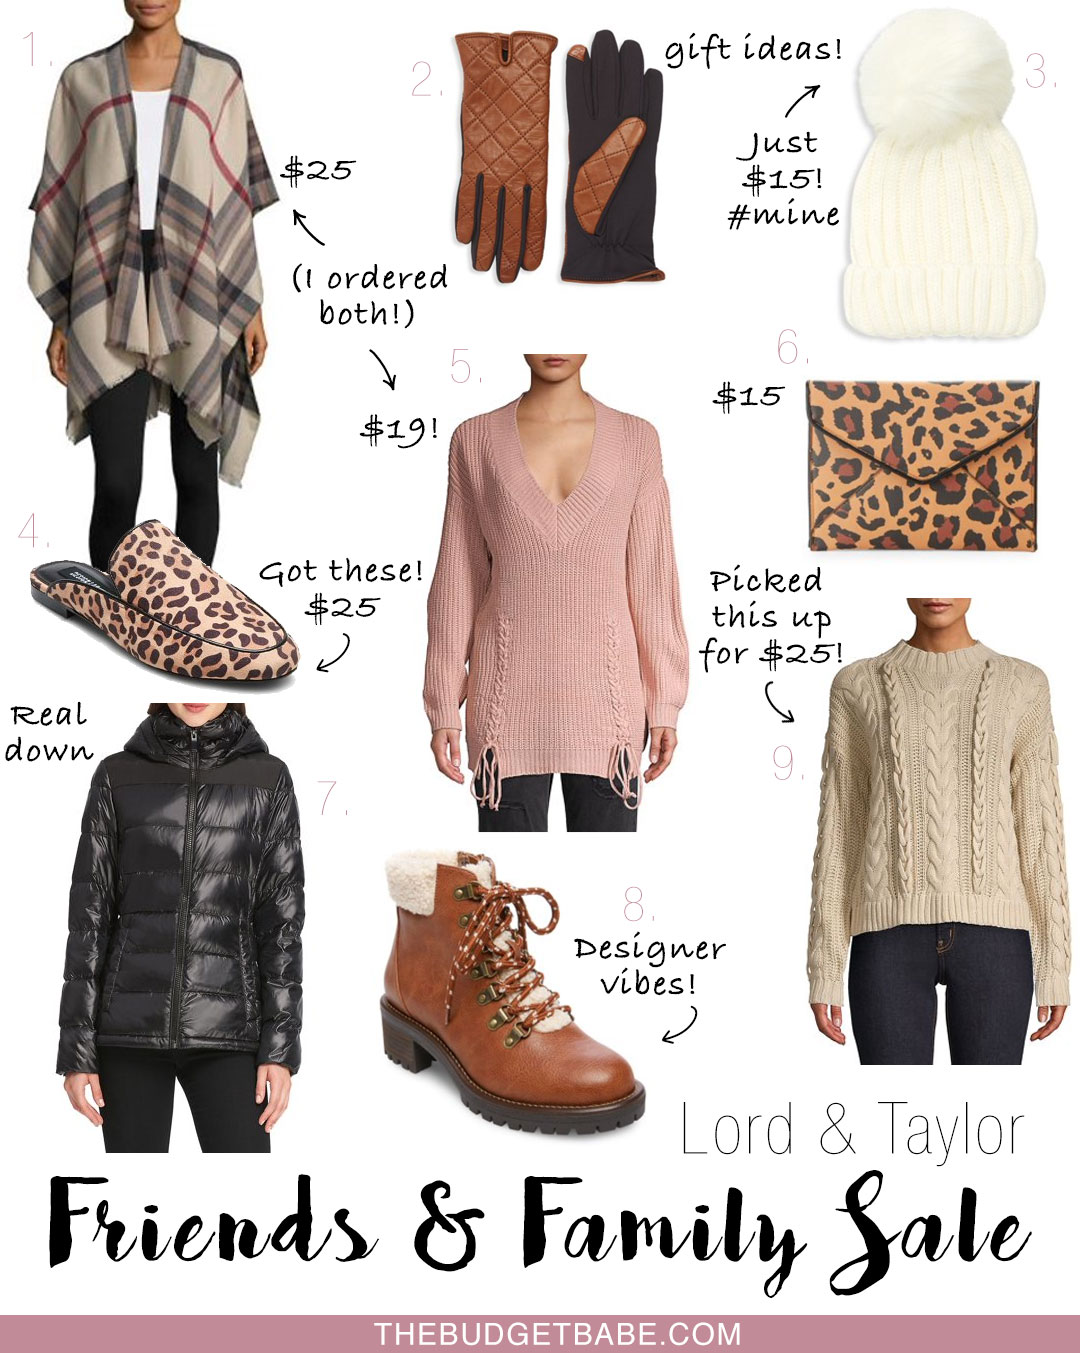 Lord & Taylor Friends and Family Sale - 30% off premium brands!